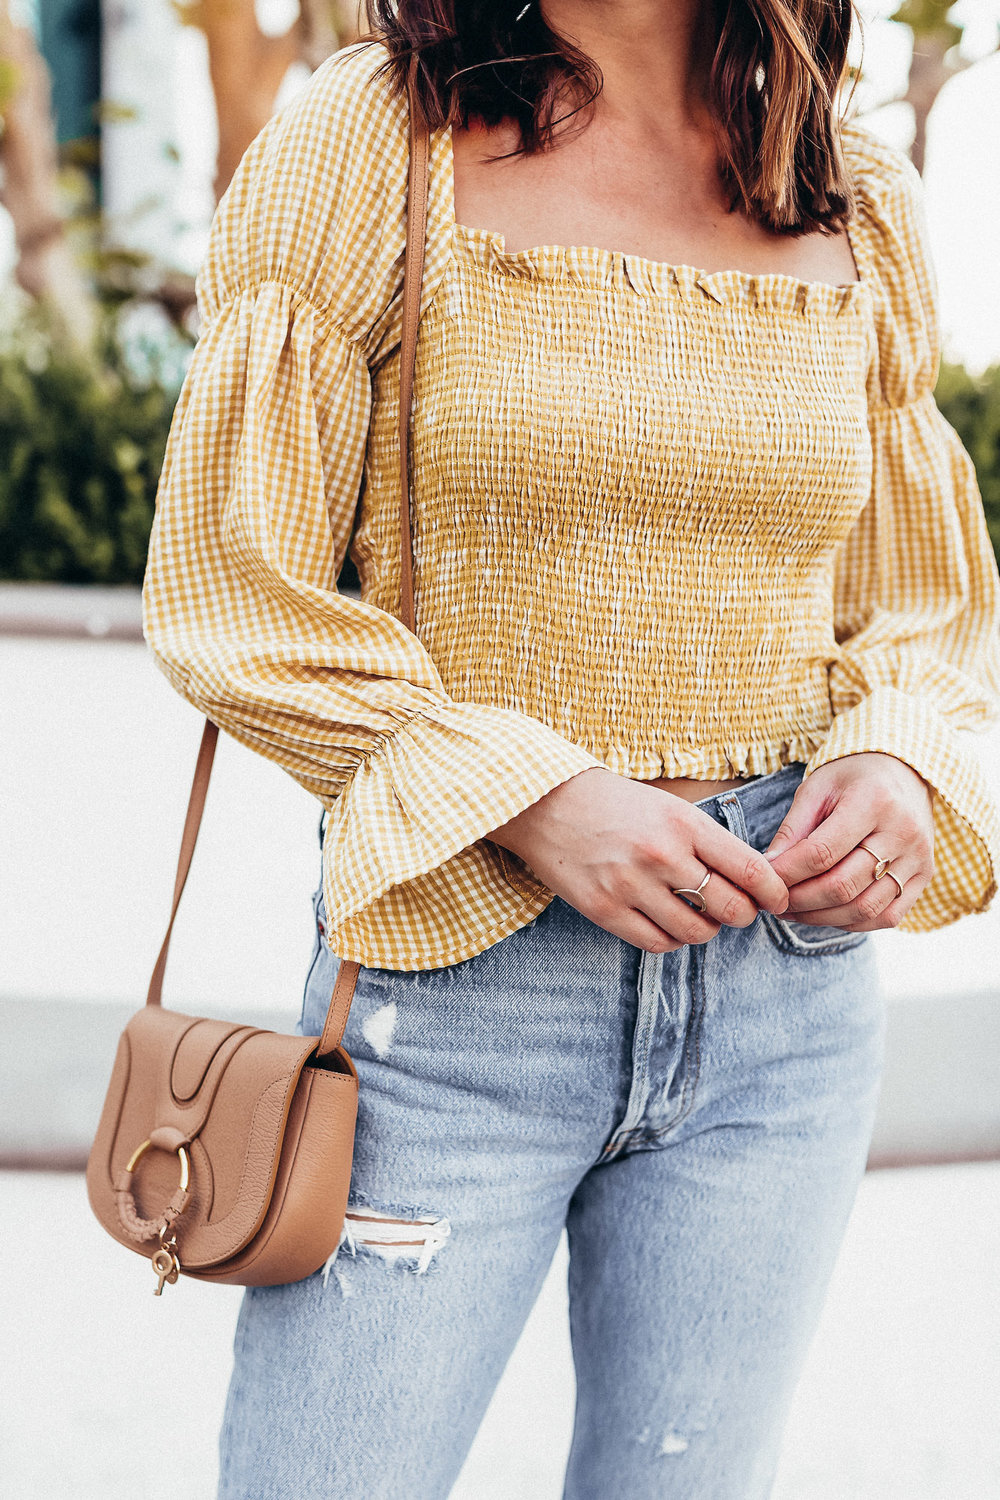 yellow gingham outfit